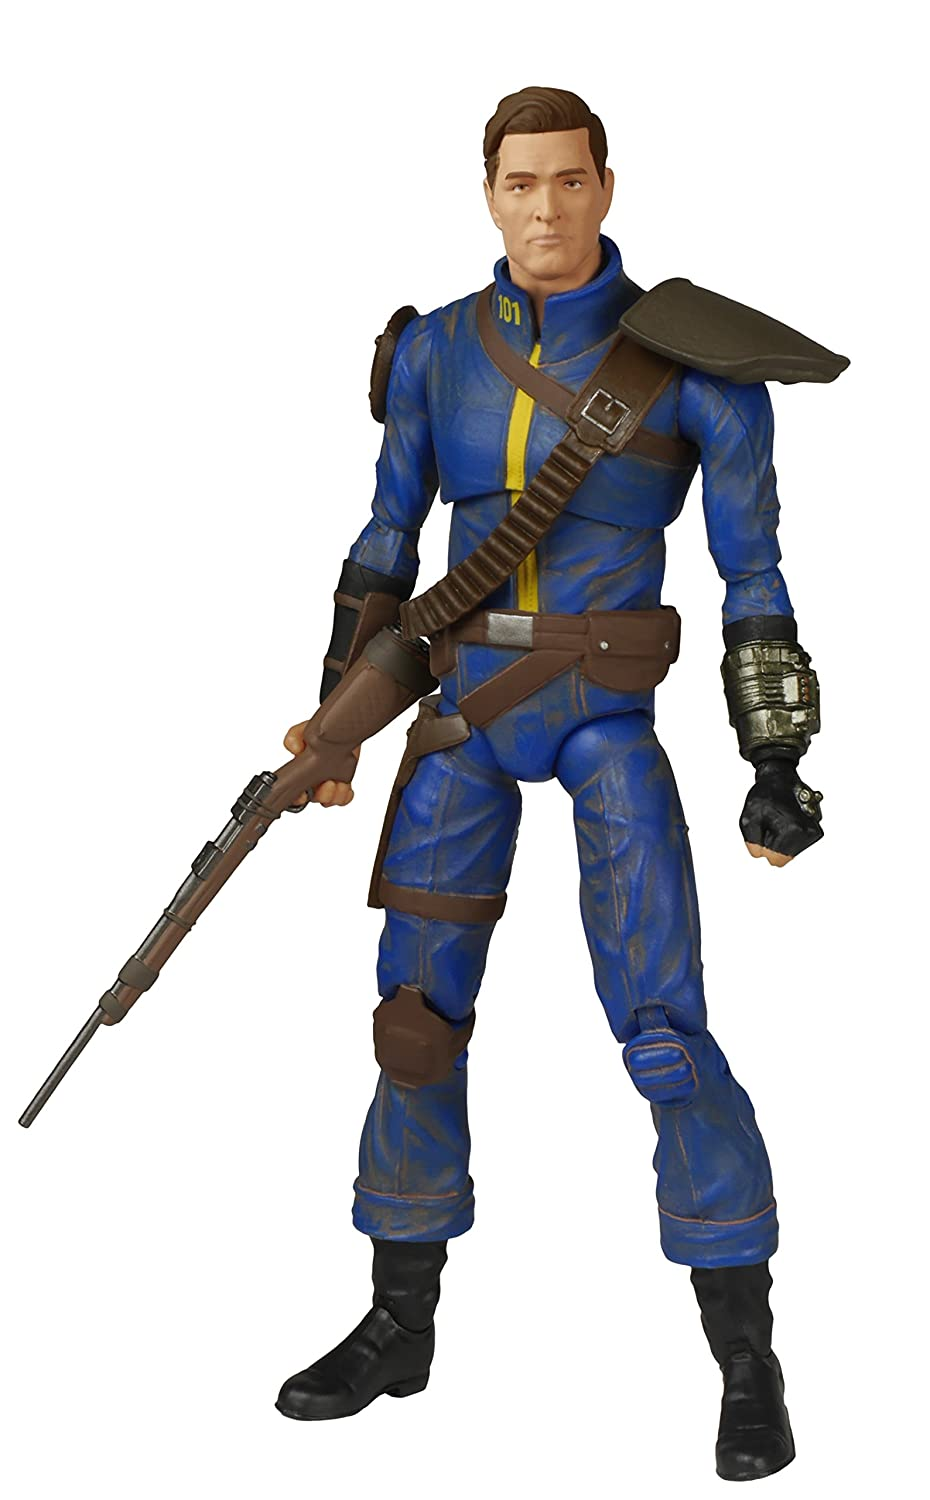 Funko Legacy Action: Fallout Lone Wanderer Action Figure (Blister Pack) Funko Legacy Collection: 6608 Accessory Misc. Product